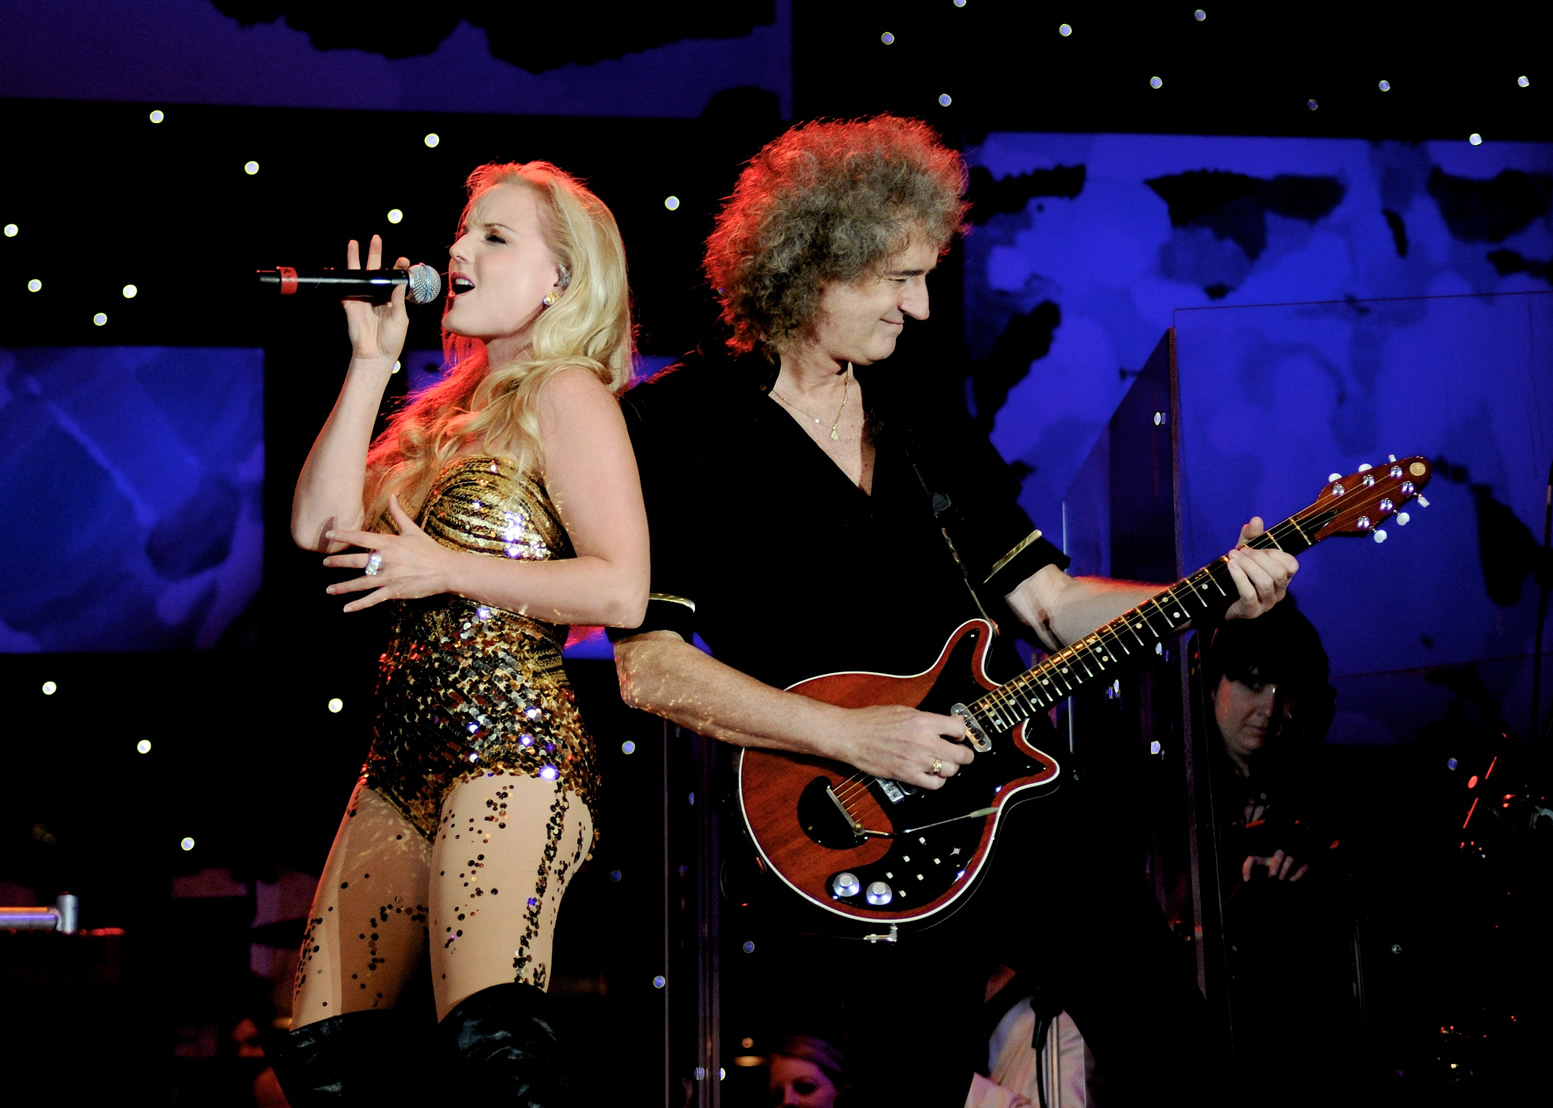 Concert extraordinar Brian May & Kerry Elis la Bucuresti